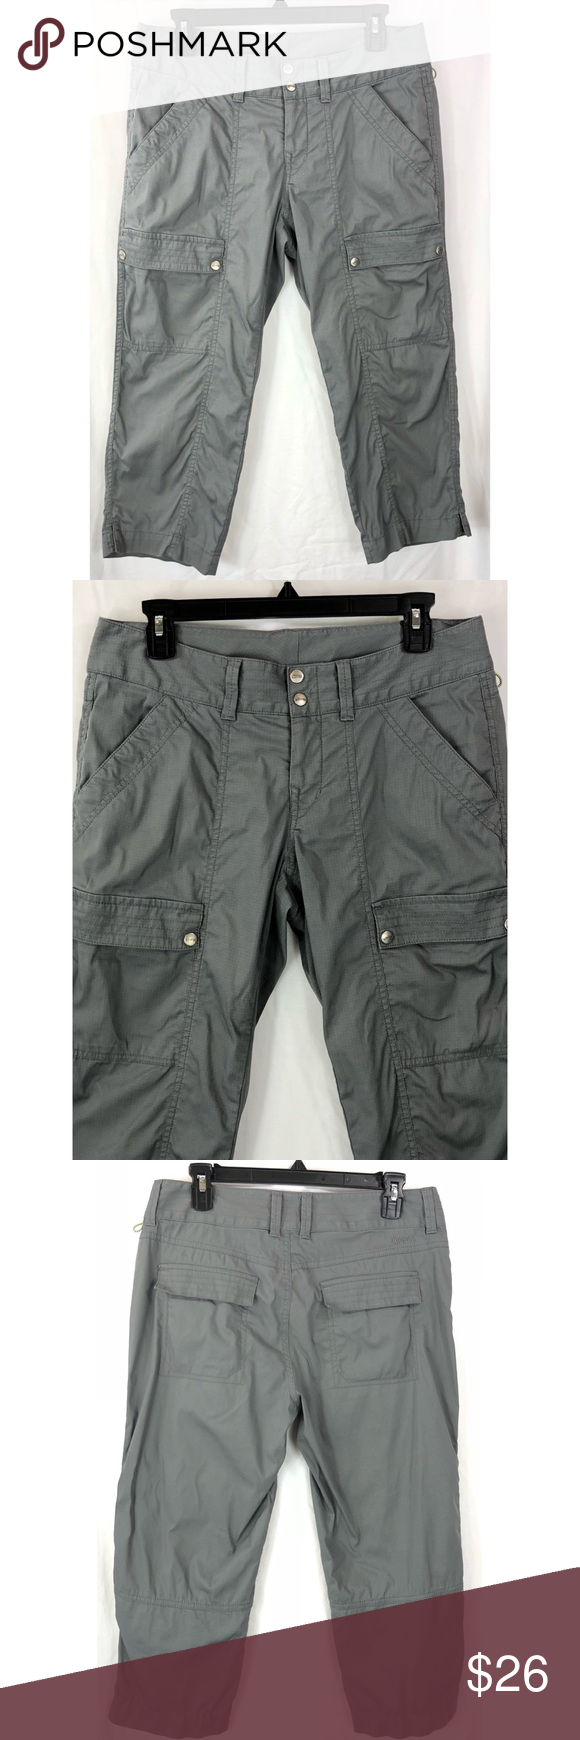 Women's Clothing Clothing, Shoes & Accessories Koppen Womens Gray Cuffed Nylon Shorts Size 8